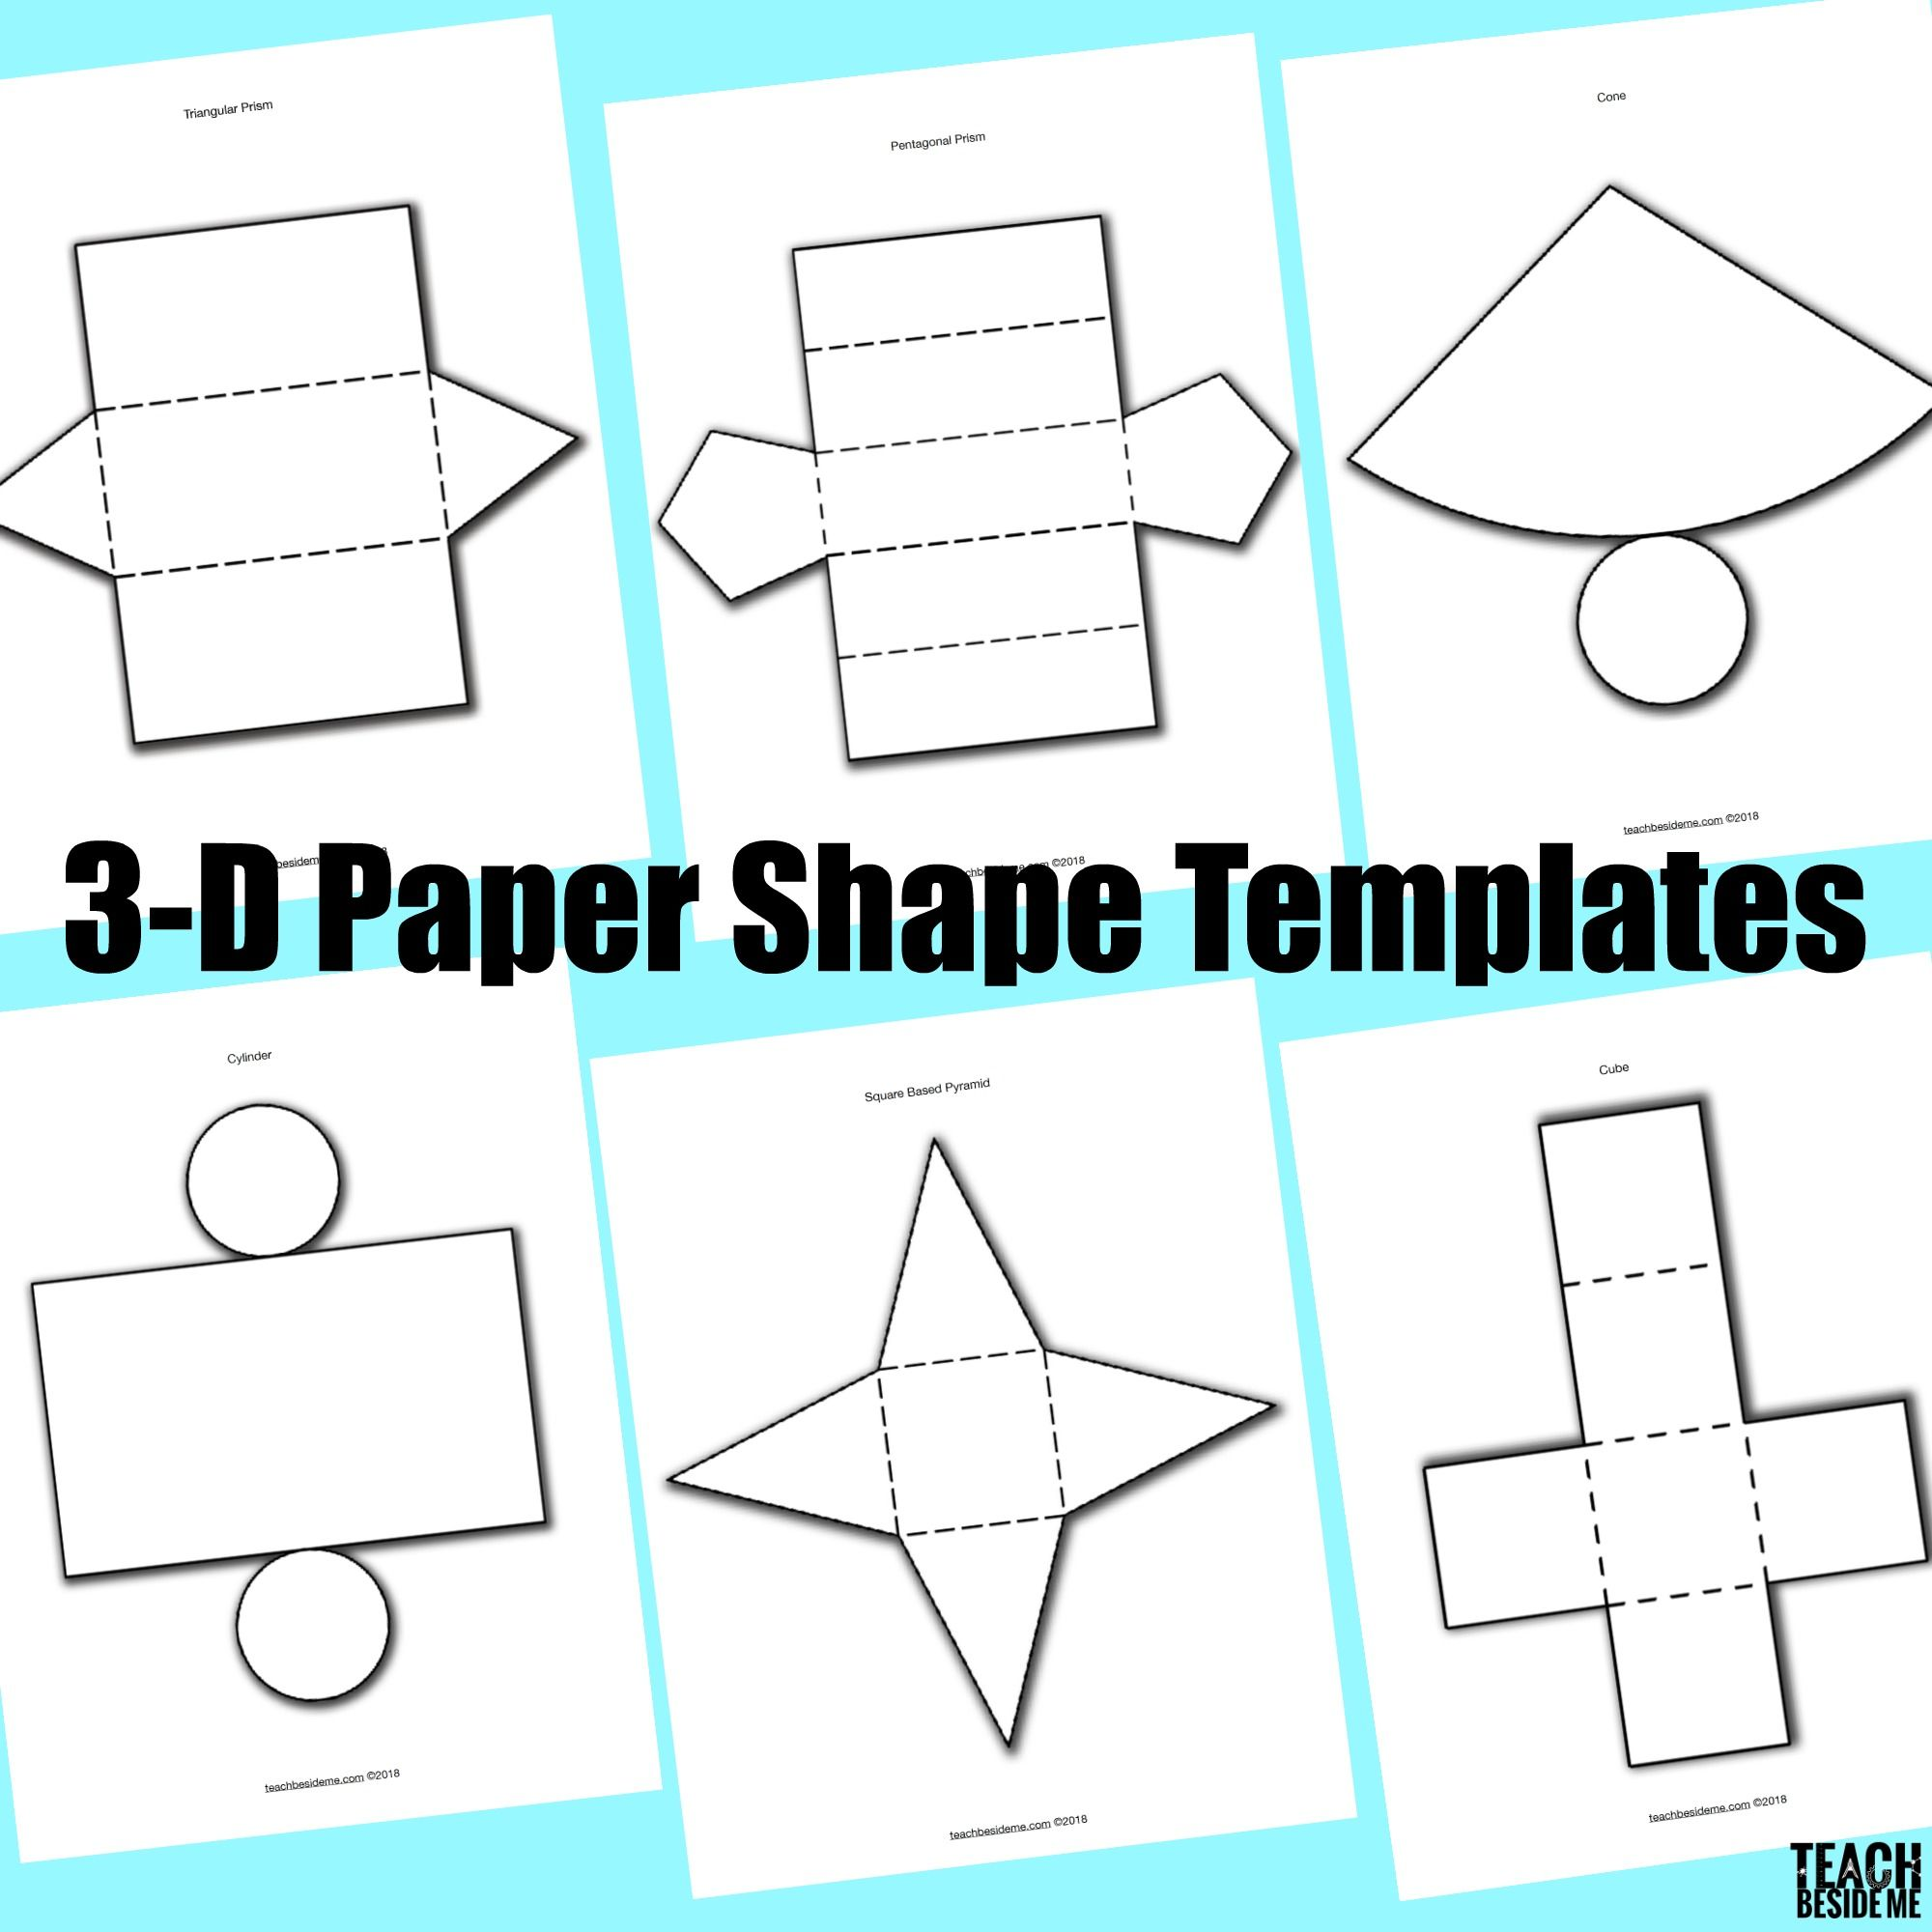 picture regarding Paper Cutout Templates identified as 3-D Paper Form Templates Math Form templates, Paper